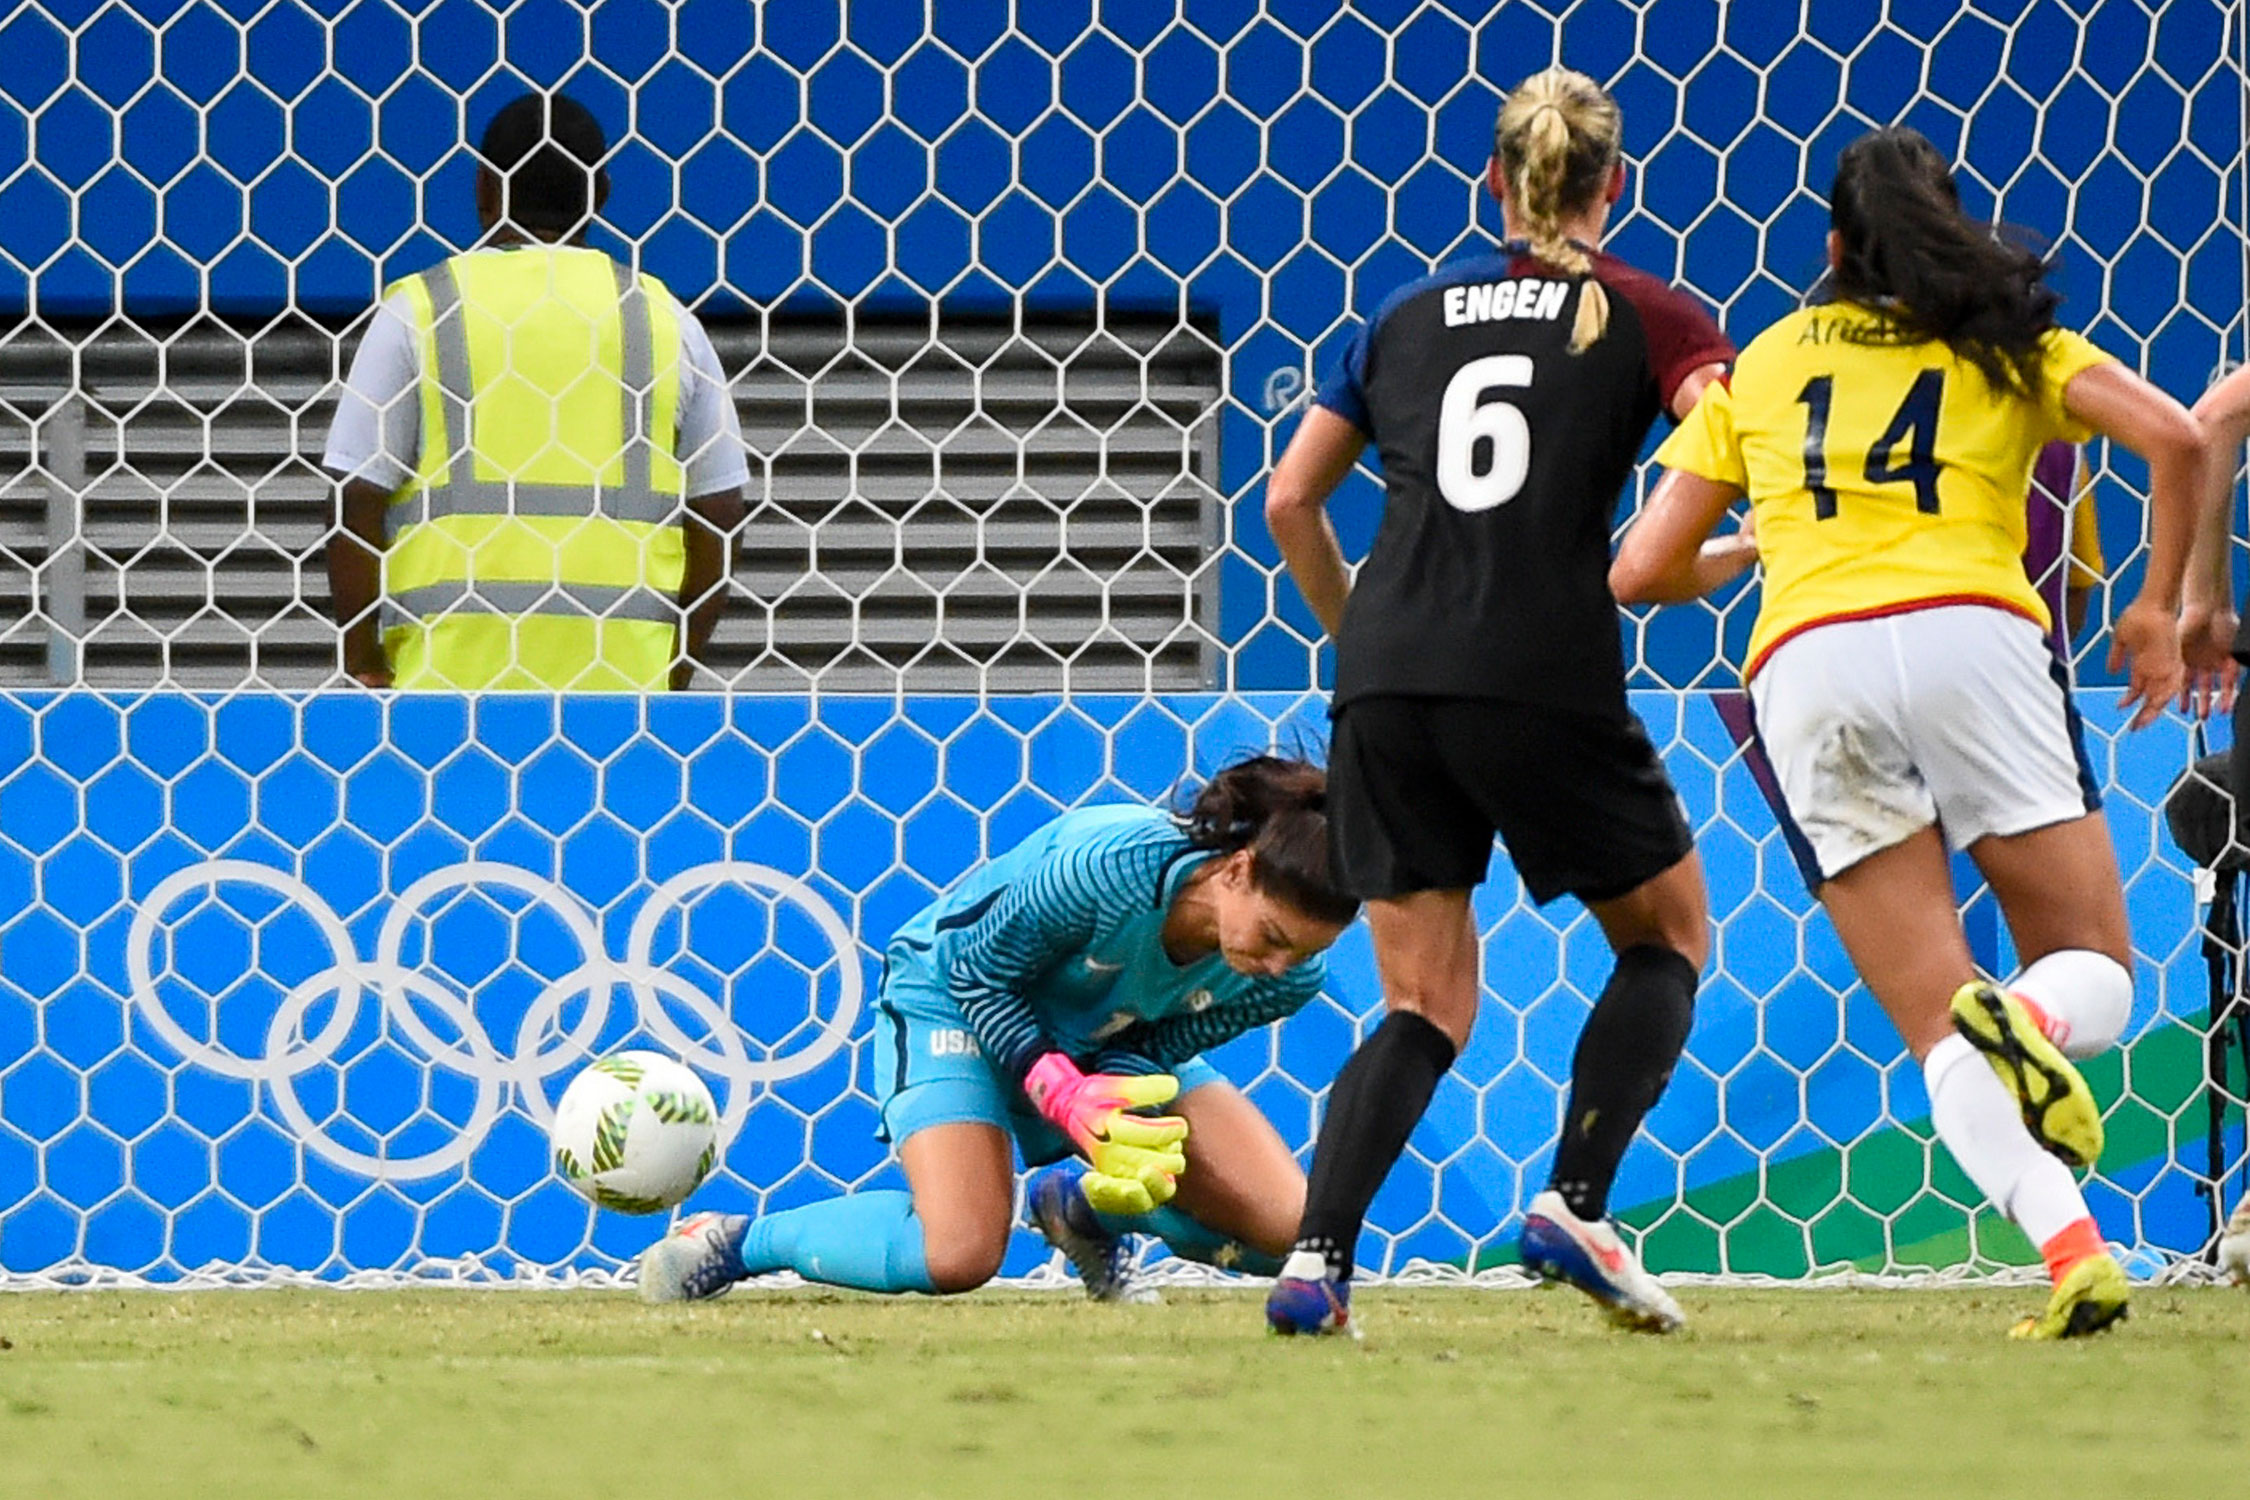 Hope Solo lets a Catalina Usme free kick slip through her hands and legs in a shocking 2-2 draw. The USA still won its Olympic group despite the slip-up.